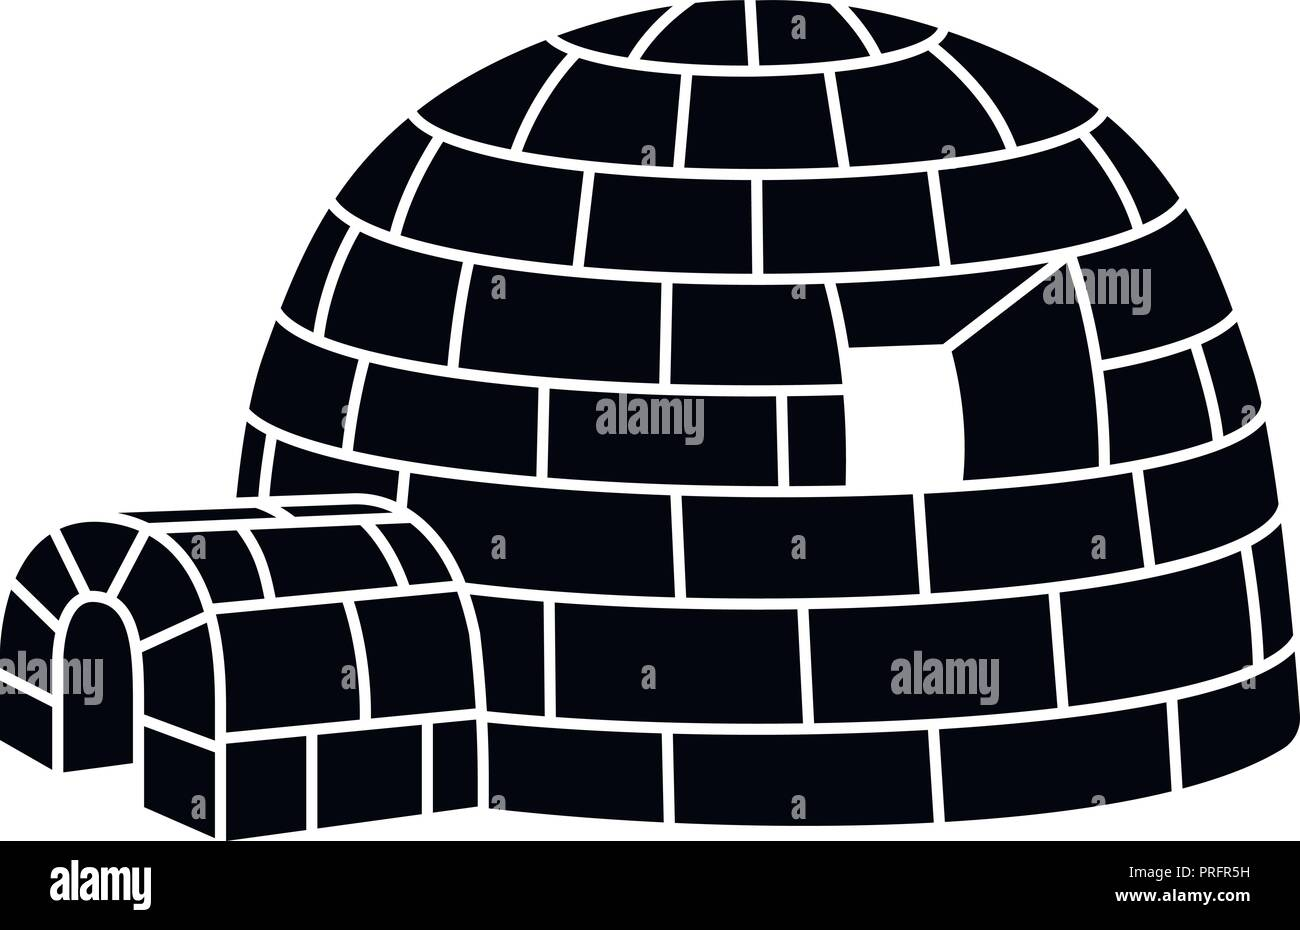 Eskimo Igloo Stock Photos & Eskimo Igloo Stock Images - Alamy